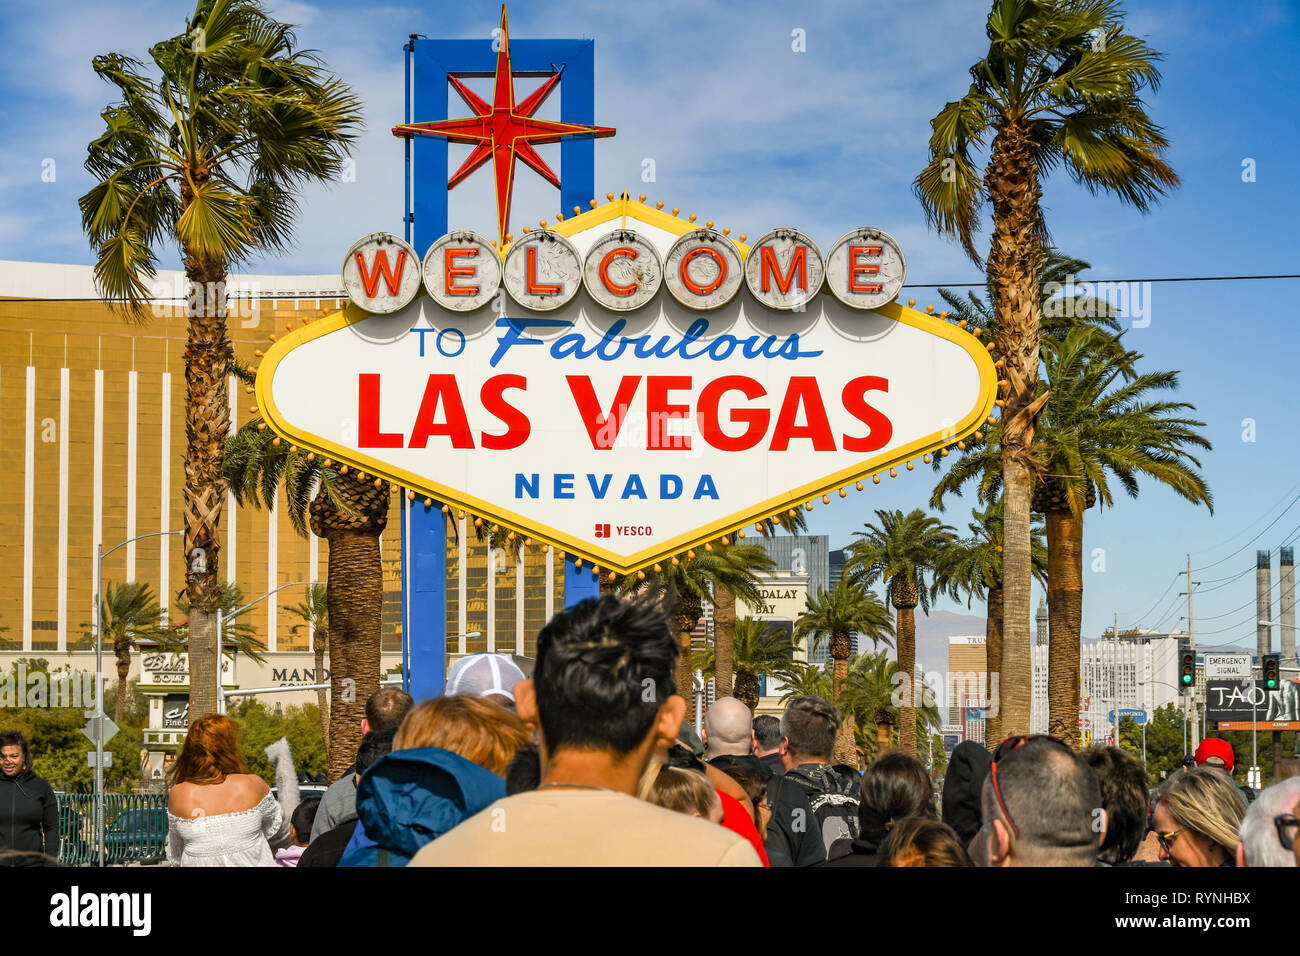 """LAS VEGAS, NV, USA - FEBRUARY 2019: People queuing to have their picture taken in front of the famous """"Welcome to Las Vegas"""" sign. Stock Photo"""